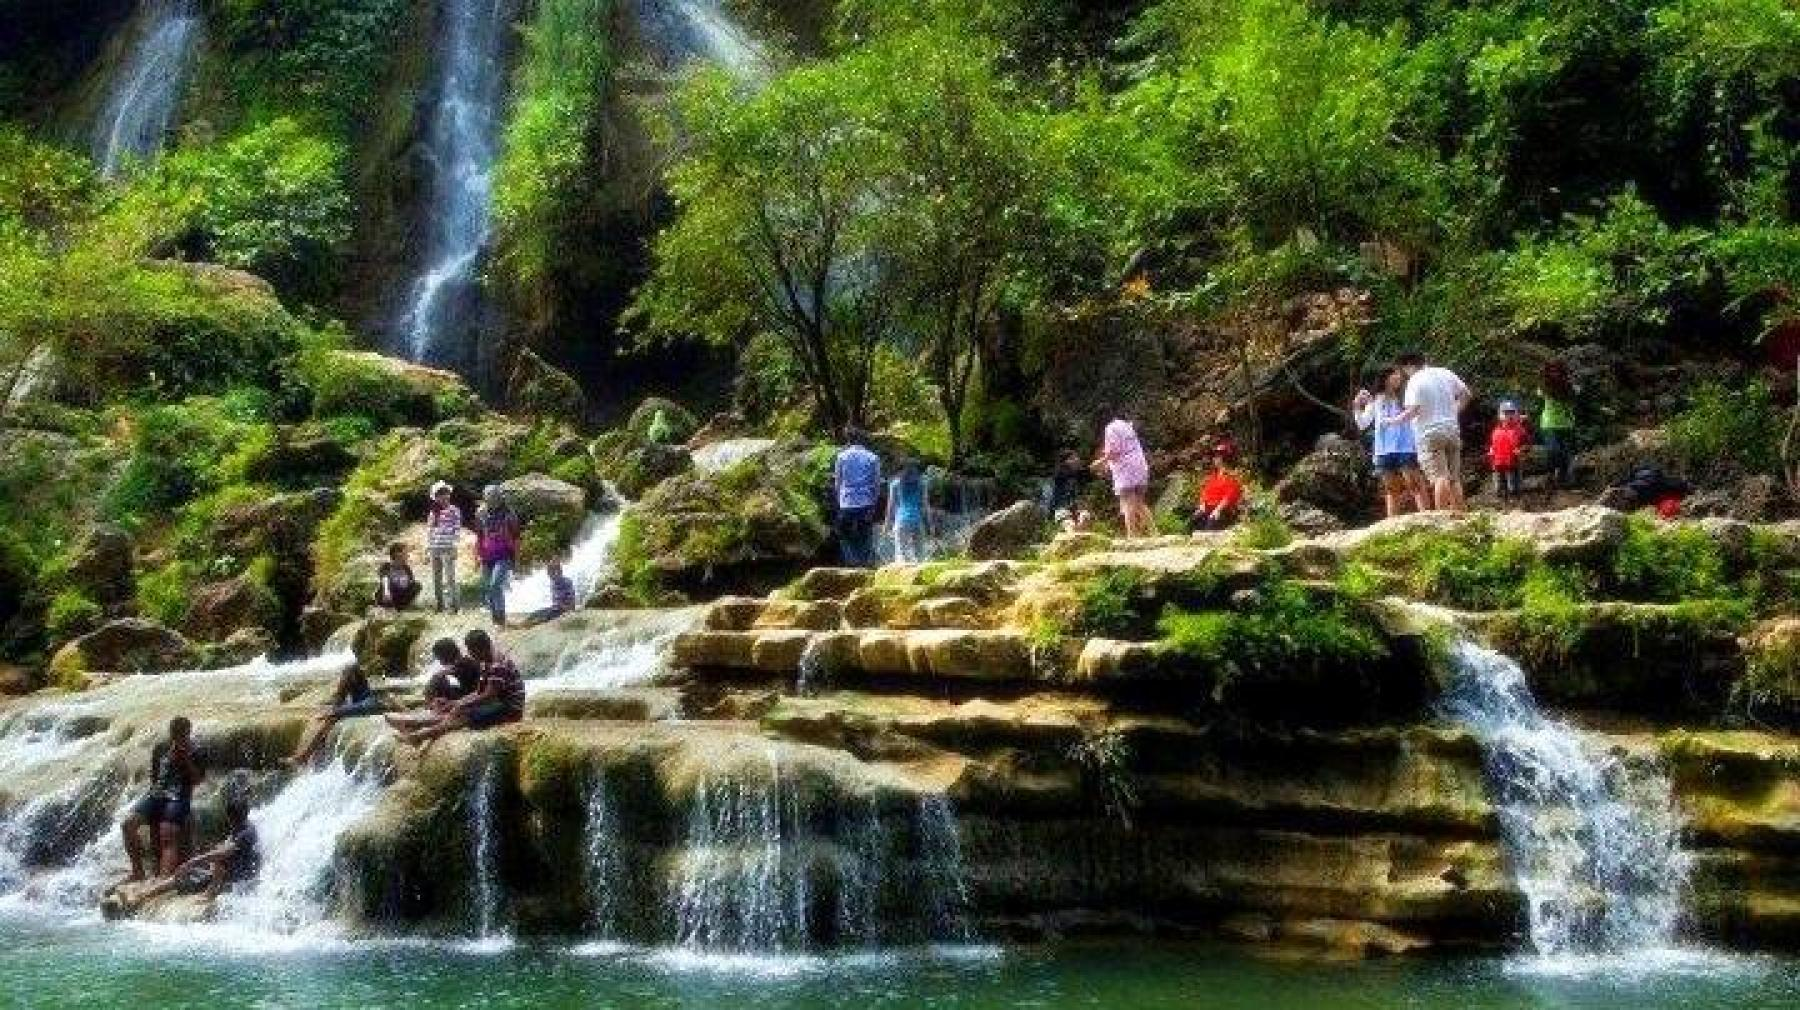 Lets' discover ancient temple, caves and volcano starting at Jogja, Yogyakarta City, Special Region of Yogyakarta, Indonesia